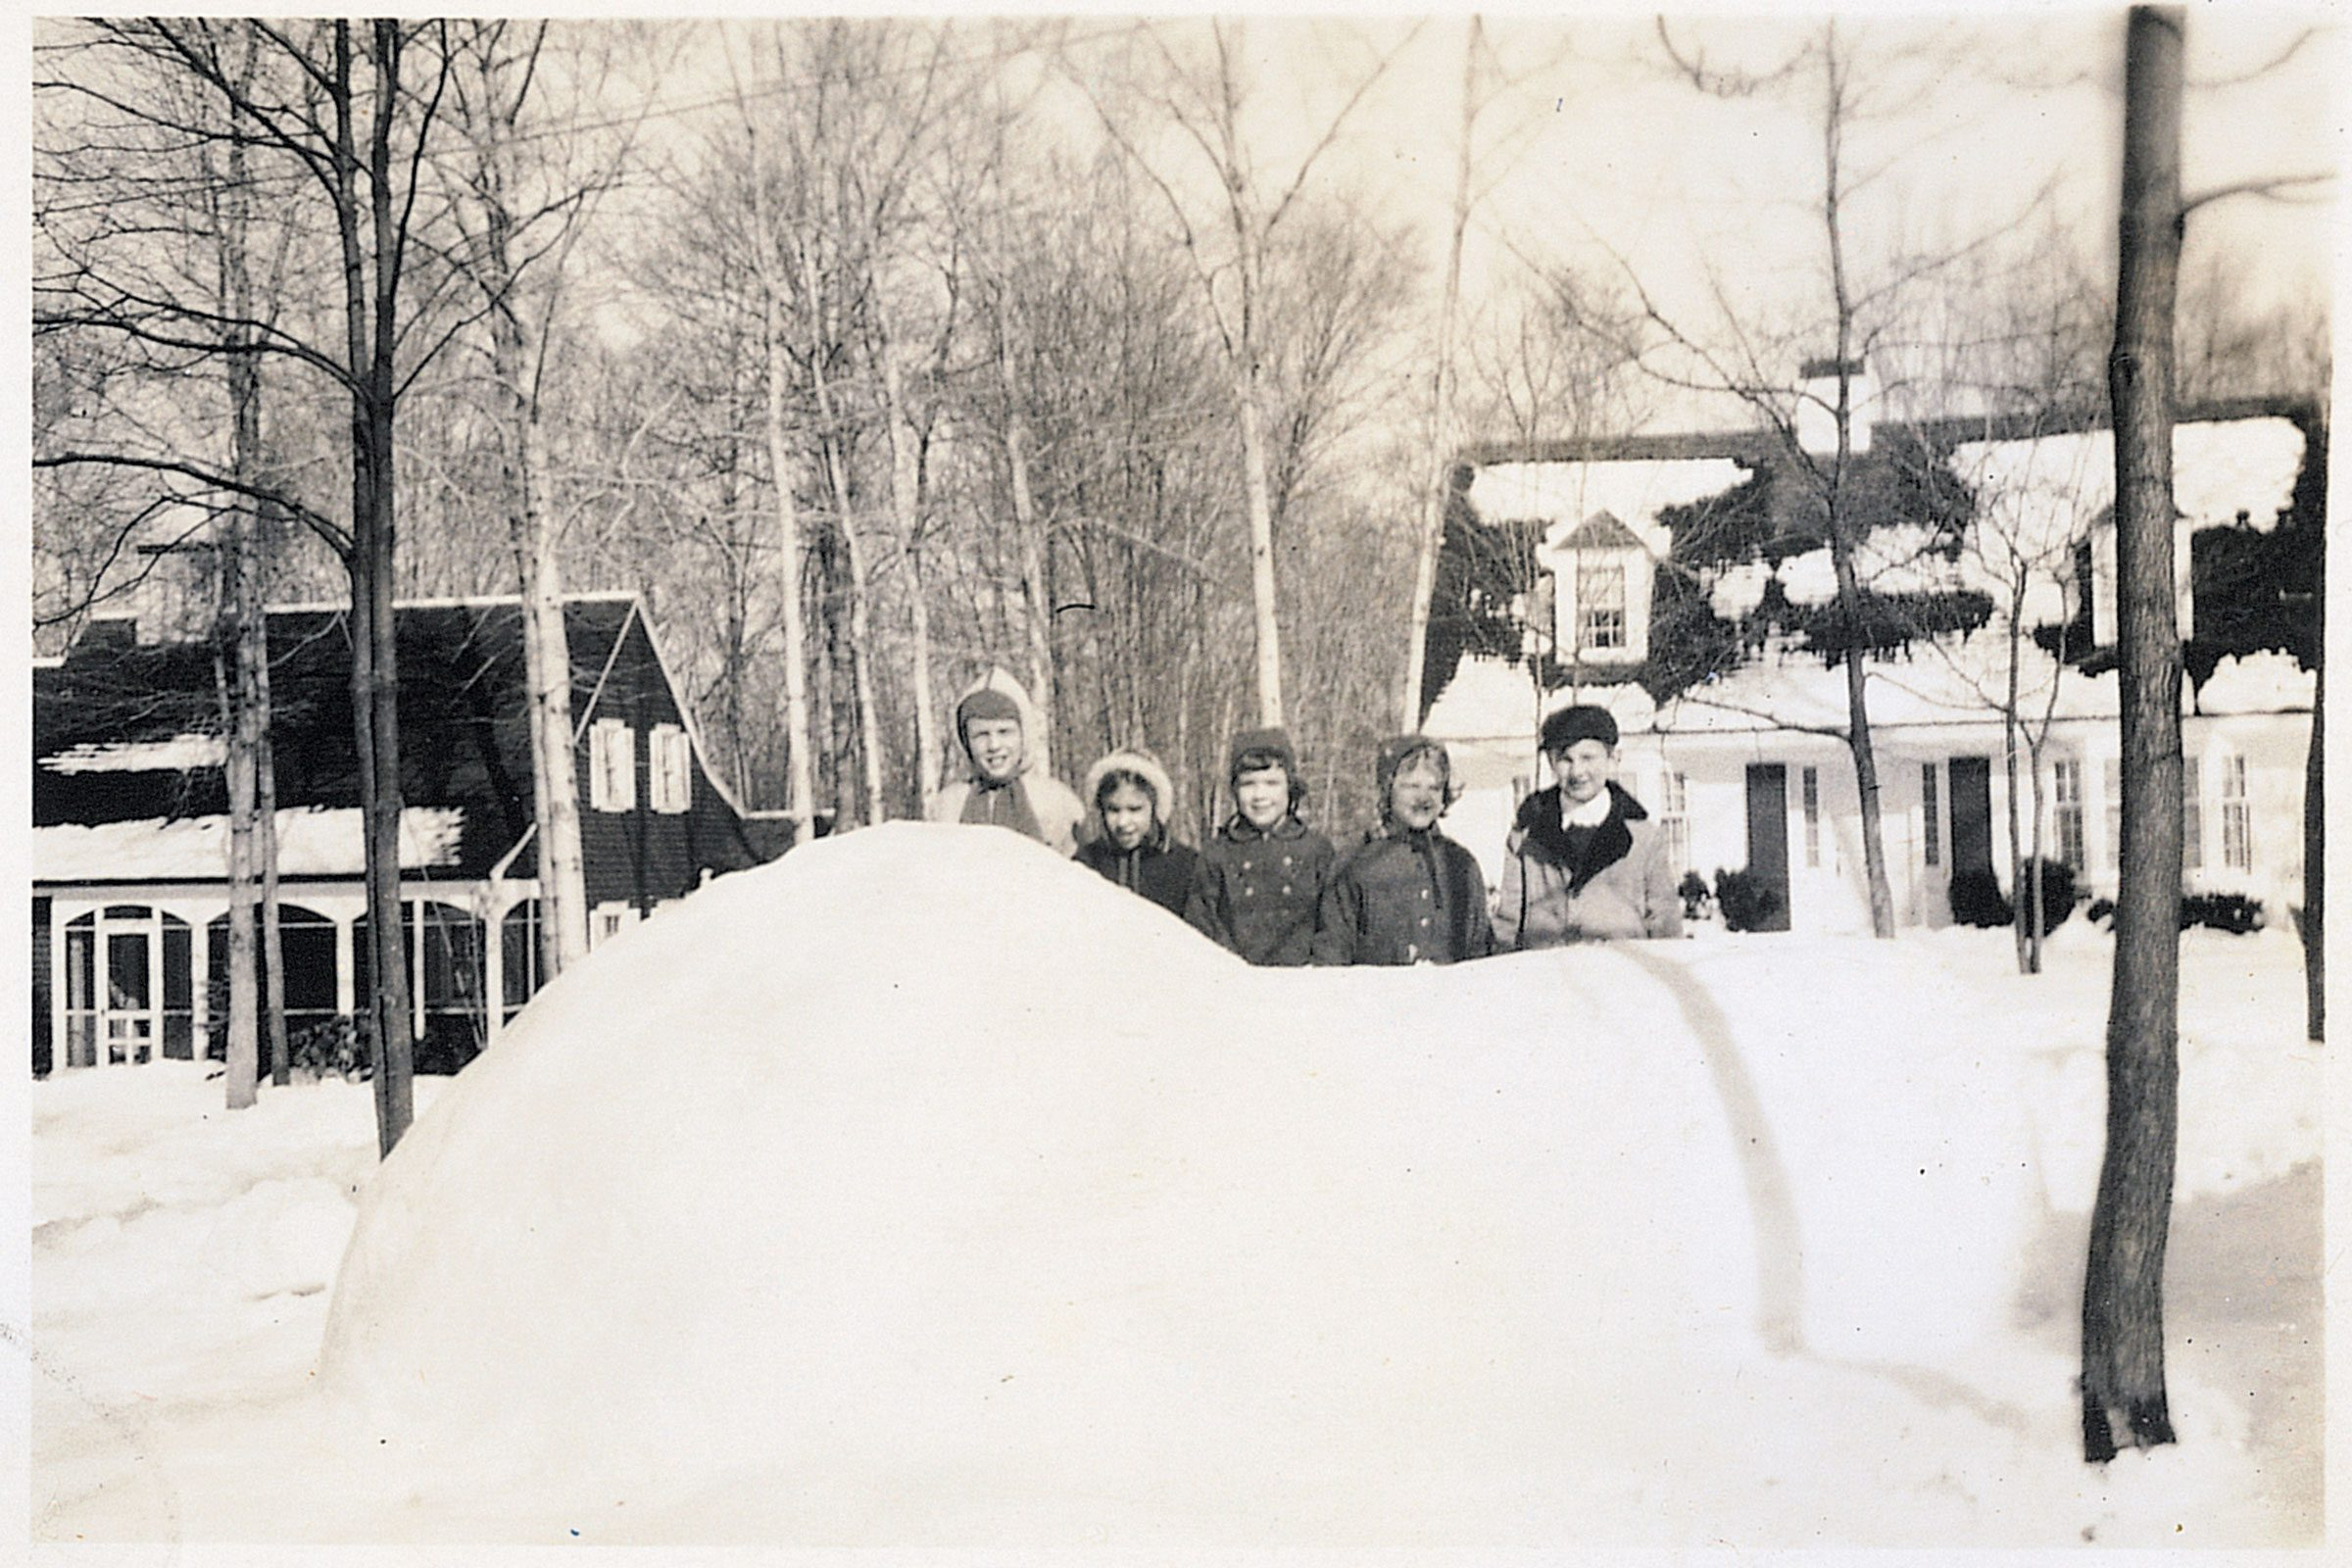 01-my-dad-built-an-incredible-igloo-that-the-whole-neighborhood-enjoyed